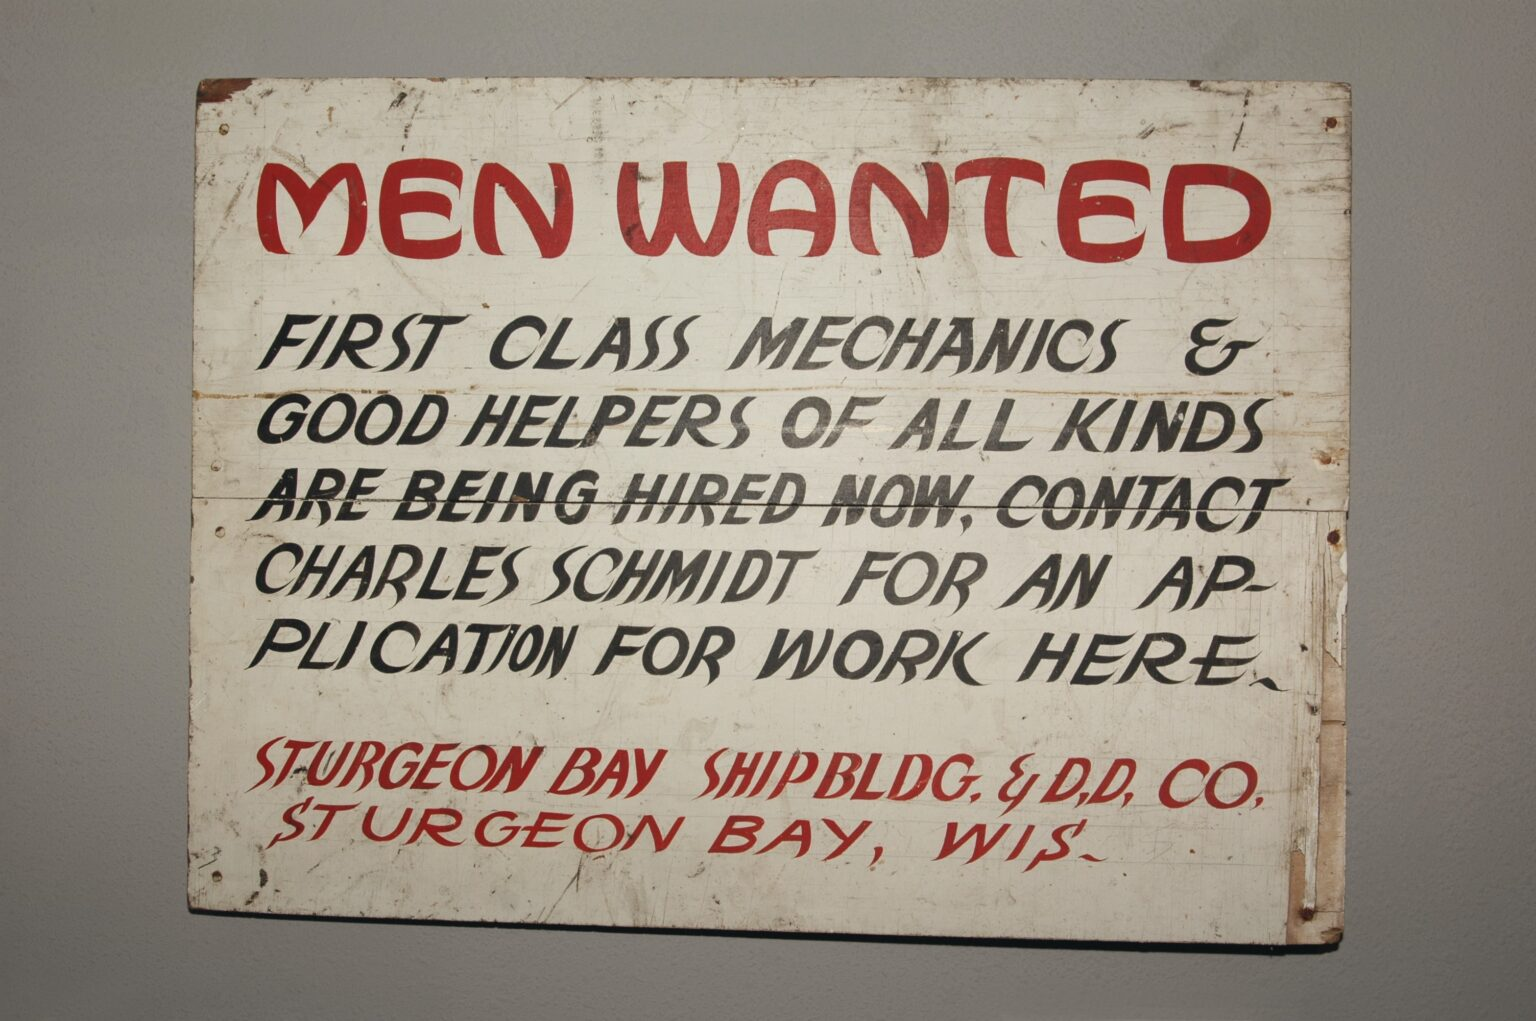 men wanted - inclusive language is key in recruitment